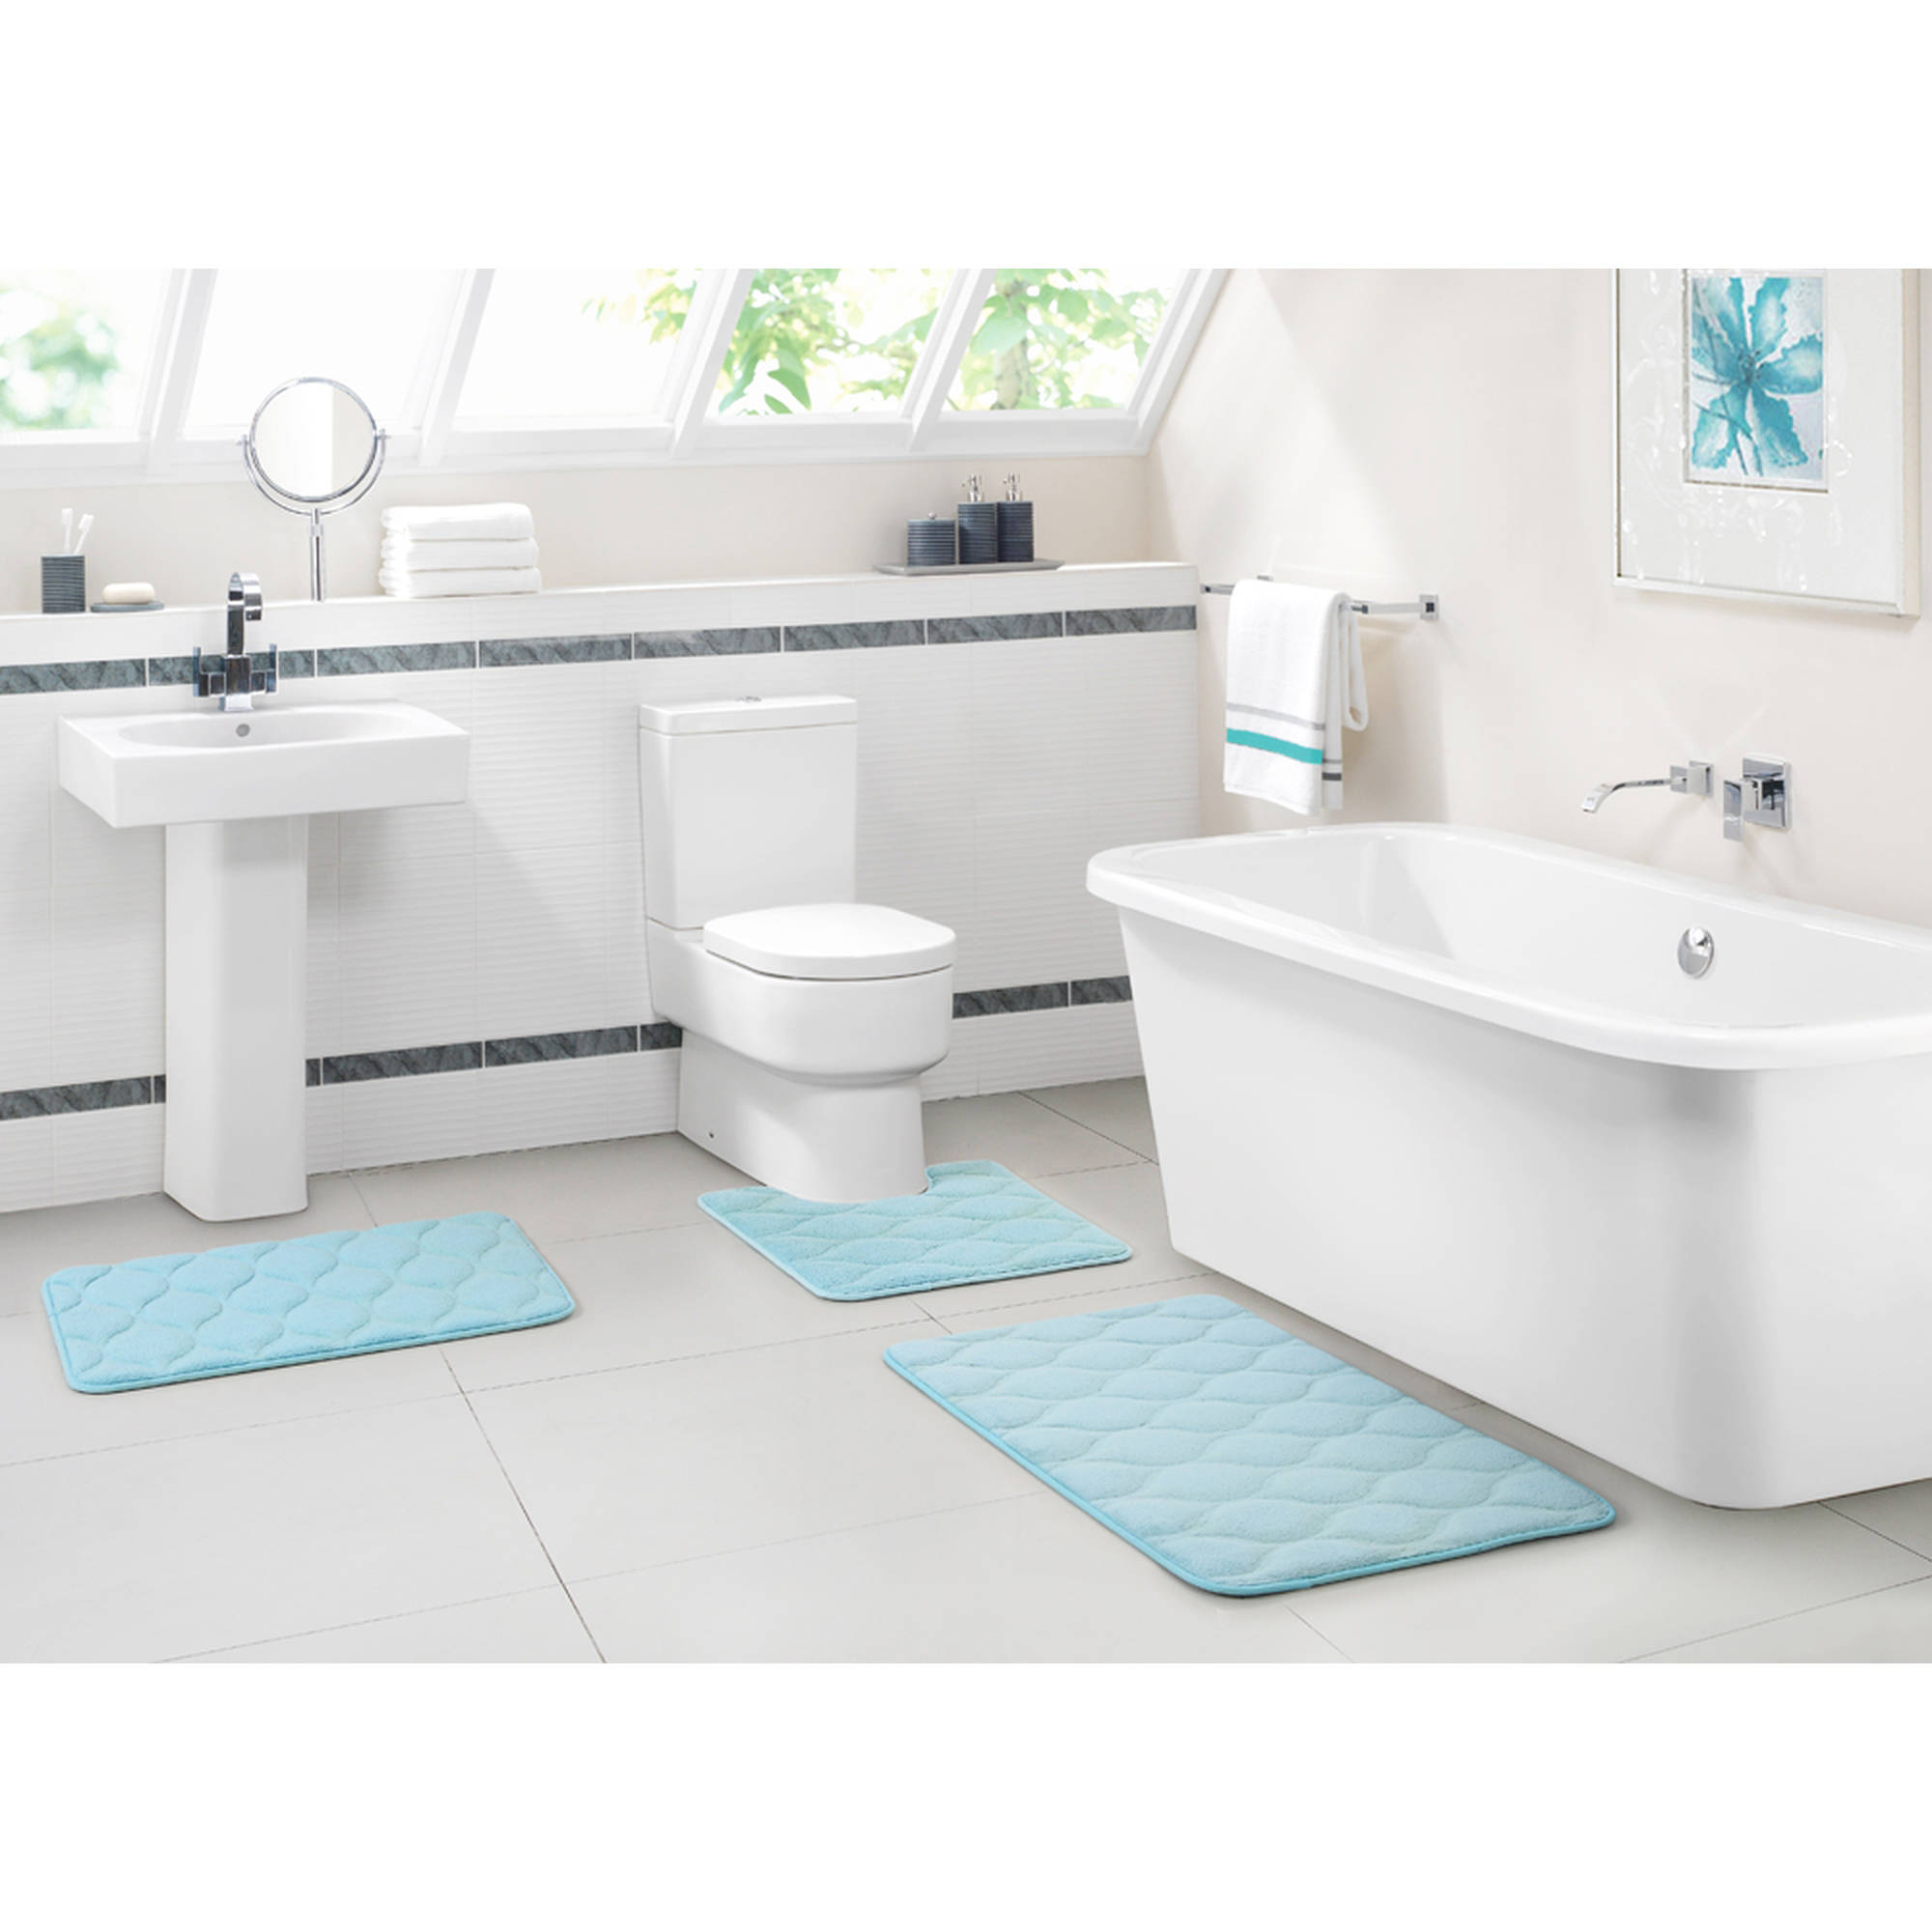 ***DISCONTINUED*** VCNY Home Ogee 3-Piece Memory Foam ...